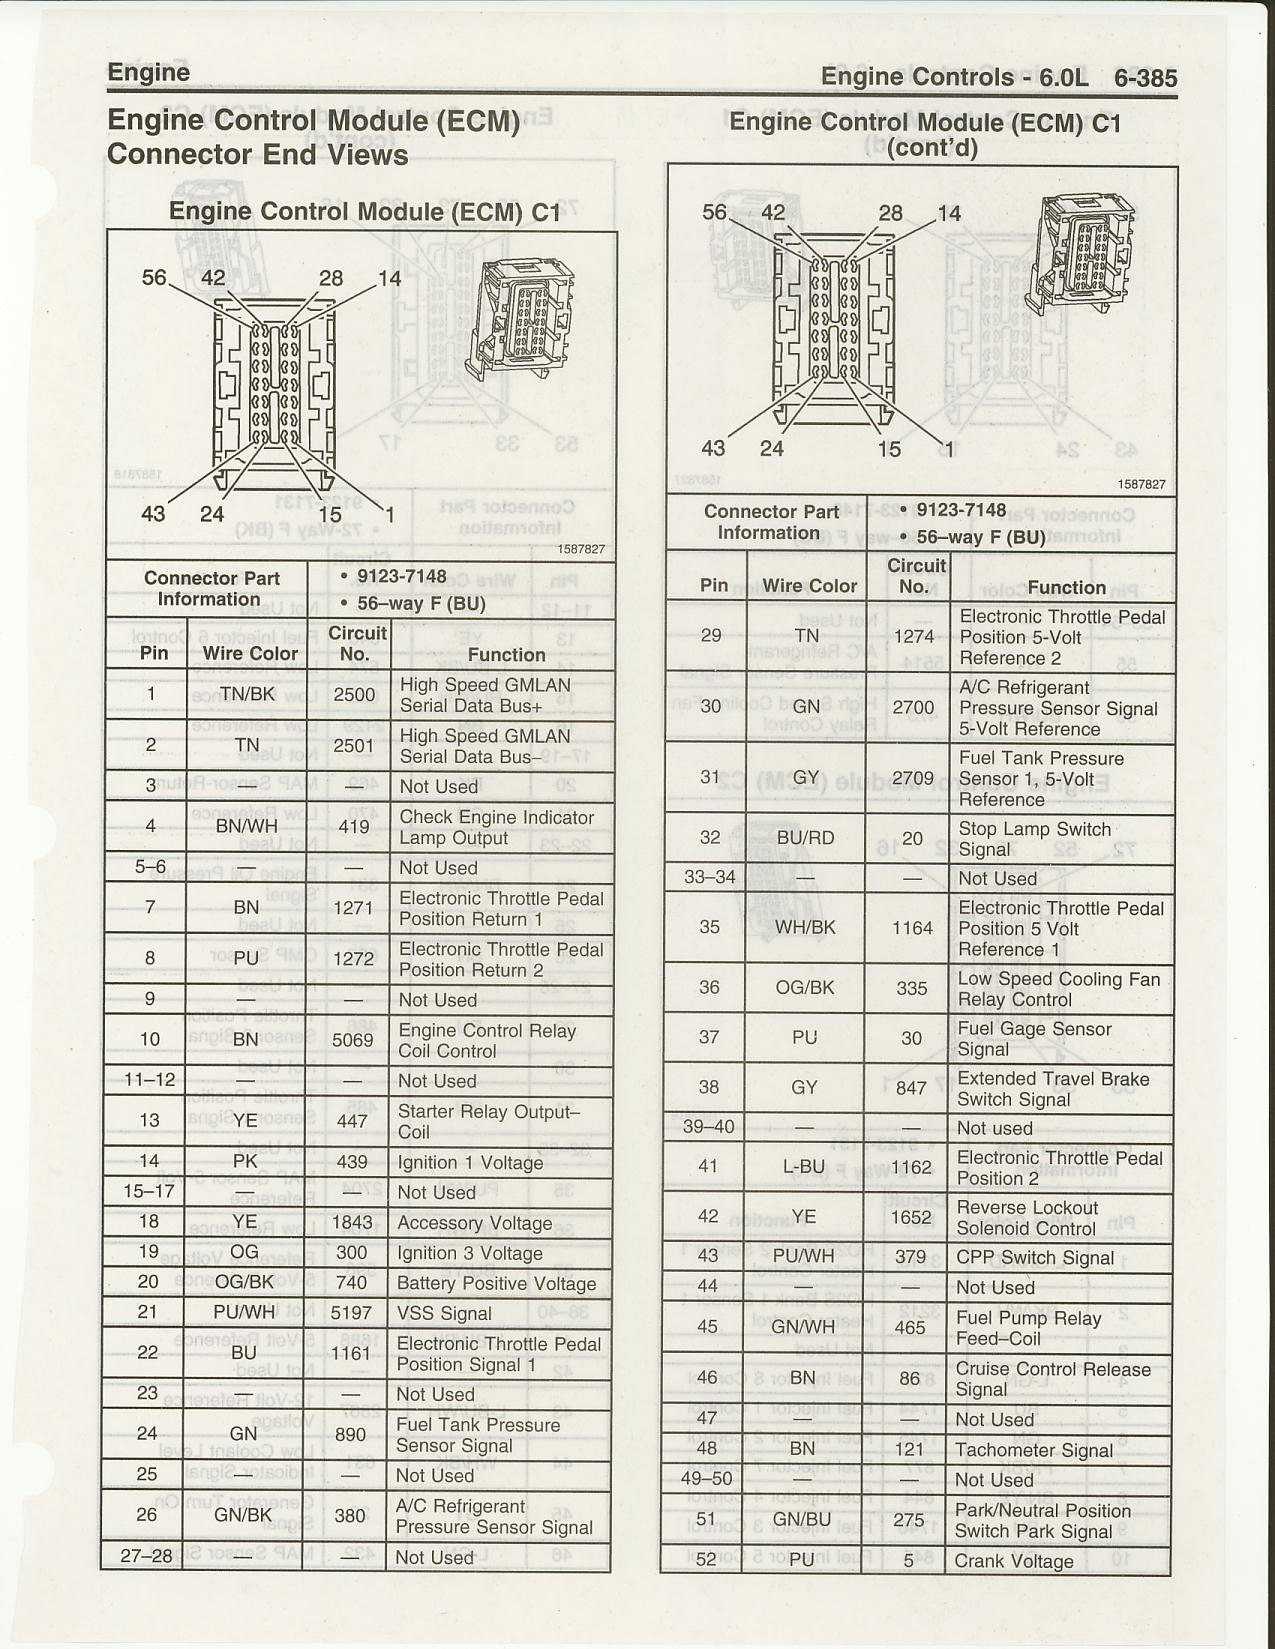 2009 10 Truck Wiring Diagram 521029 on gm radio pin out